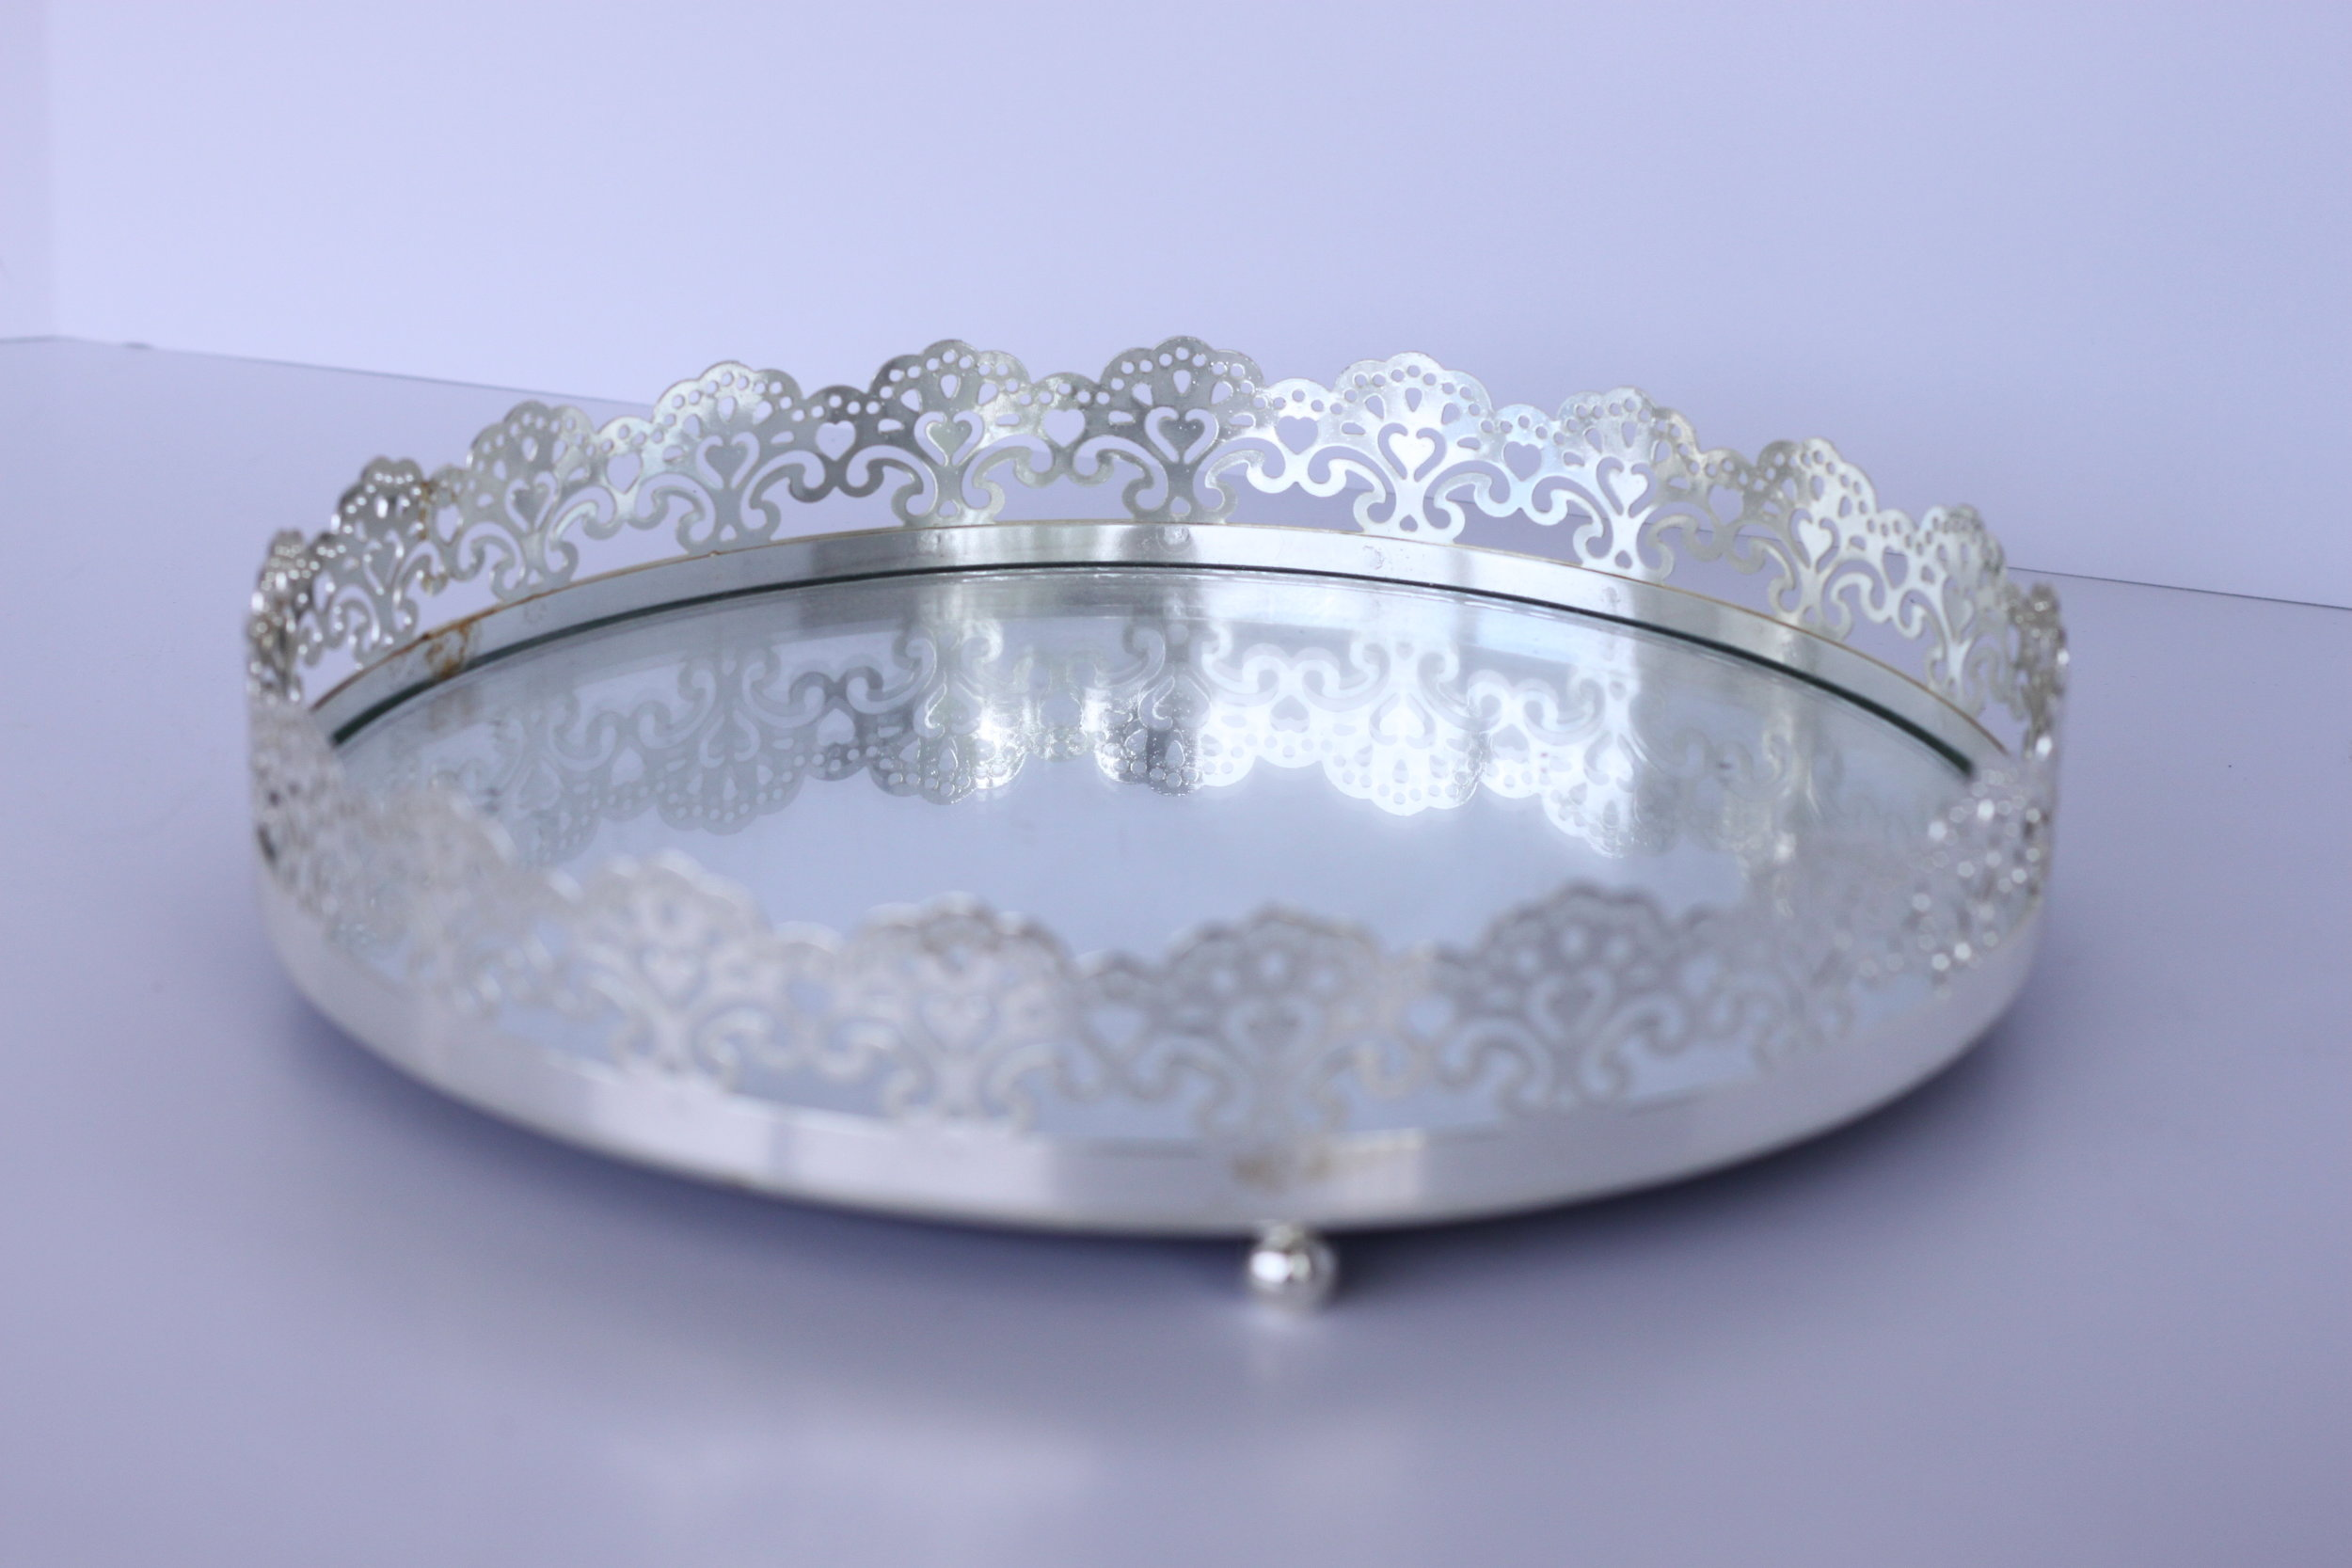 Copy of Silver Filigree Tray $5/ea.